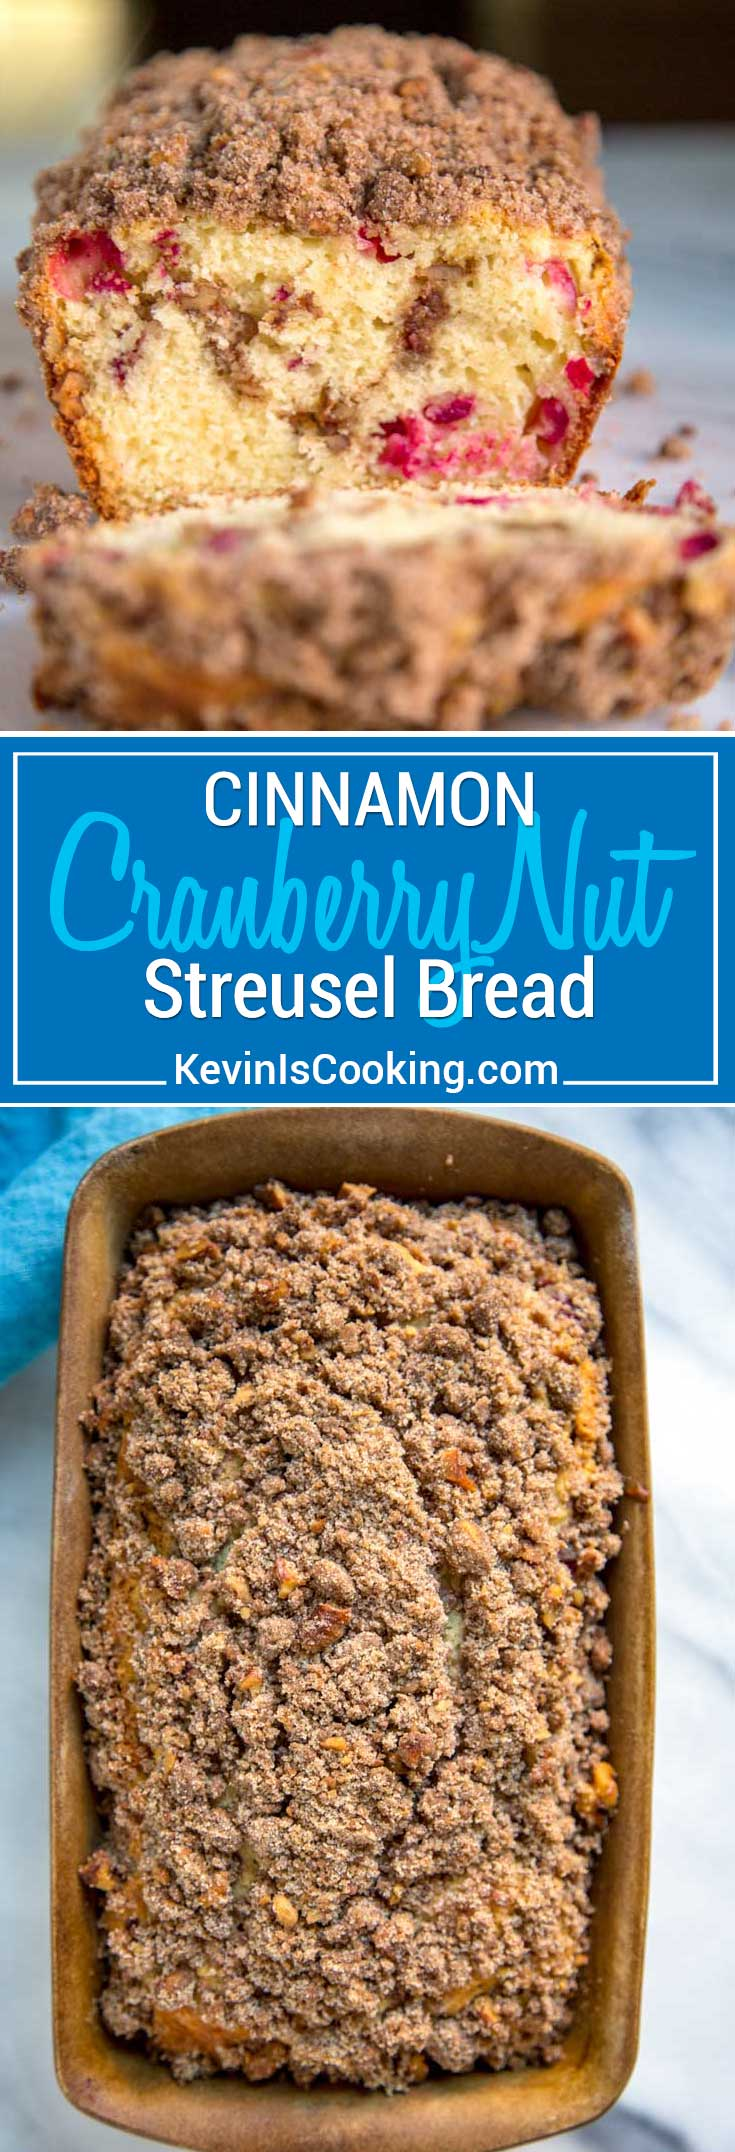 This tenderCranberry Nut Bread is the perfect way to wake up with a cup of coffee or tea. Loaded with cranberries and a crunchy cinnamon streusel topping.